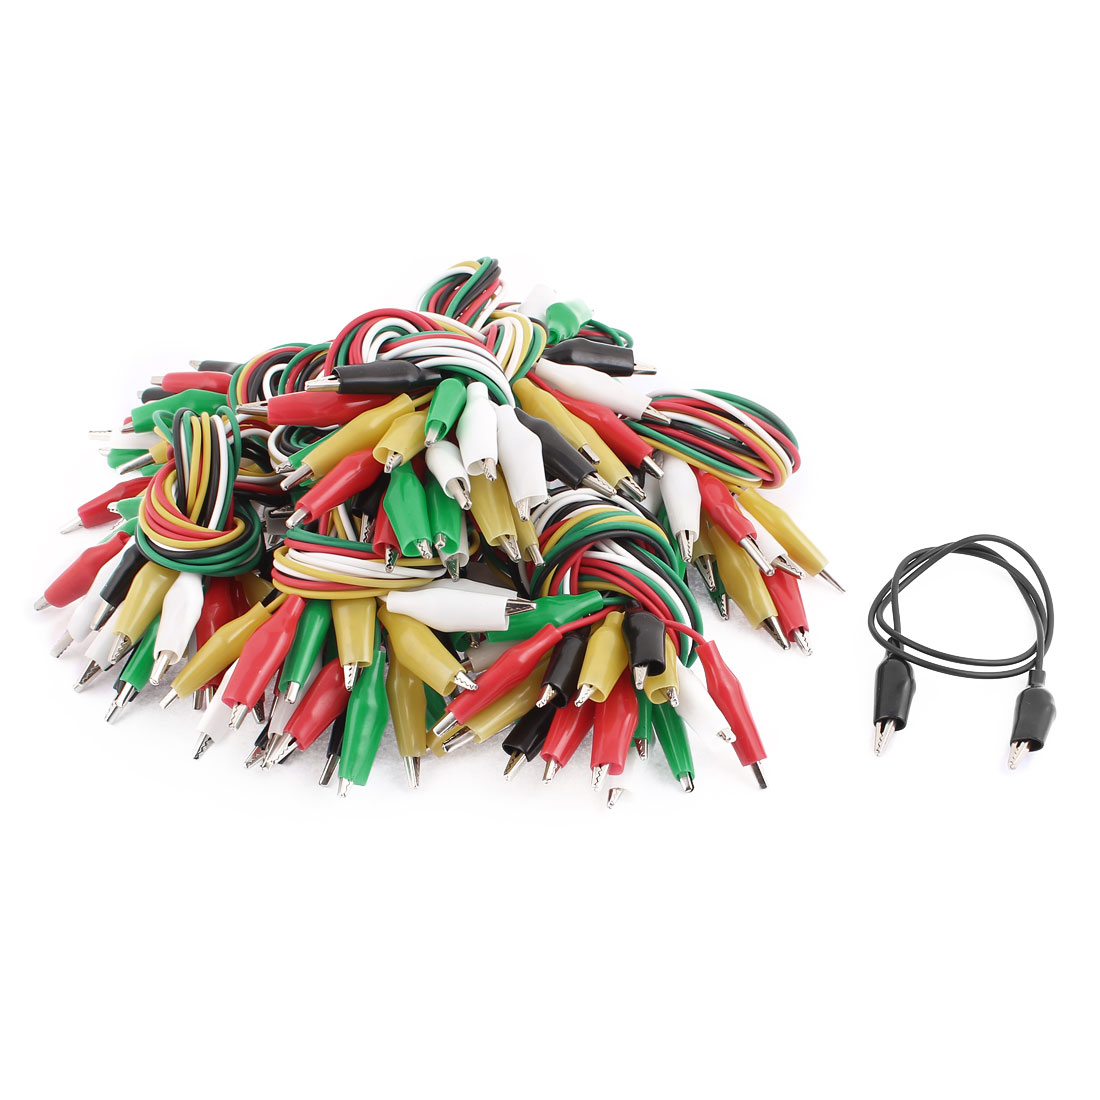 "100Pcs Colorful Double-ended Alligator Clips Test Jumper Wire 20"" Length"